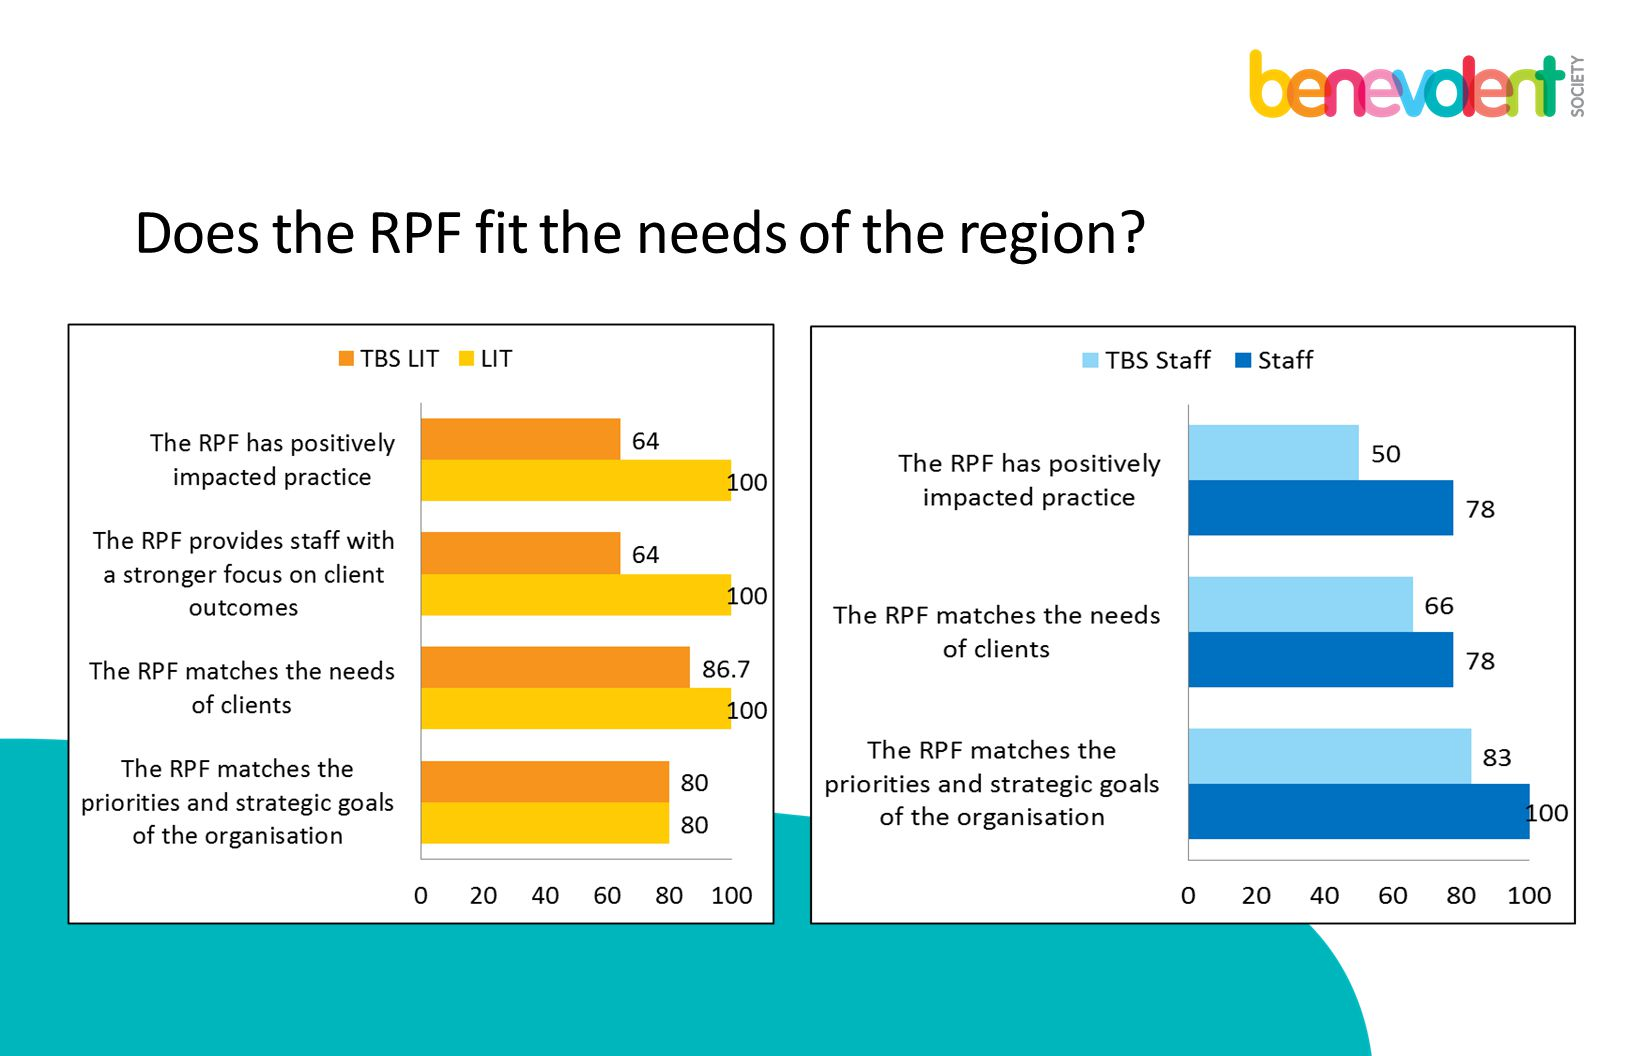 Does the RPF fit the needs of the region